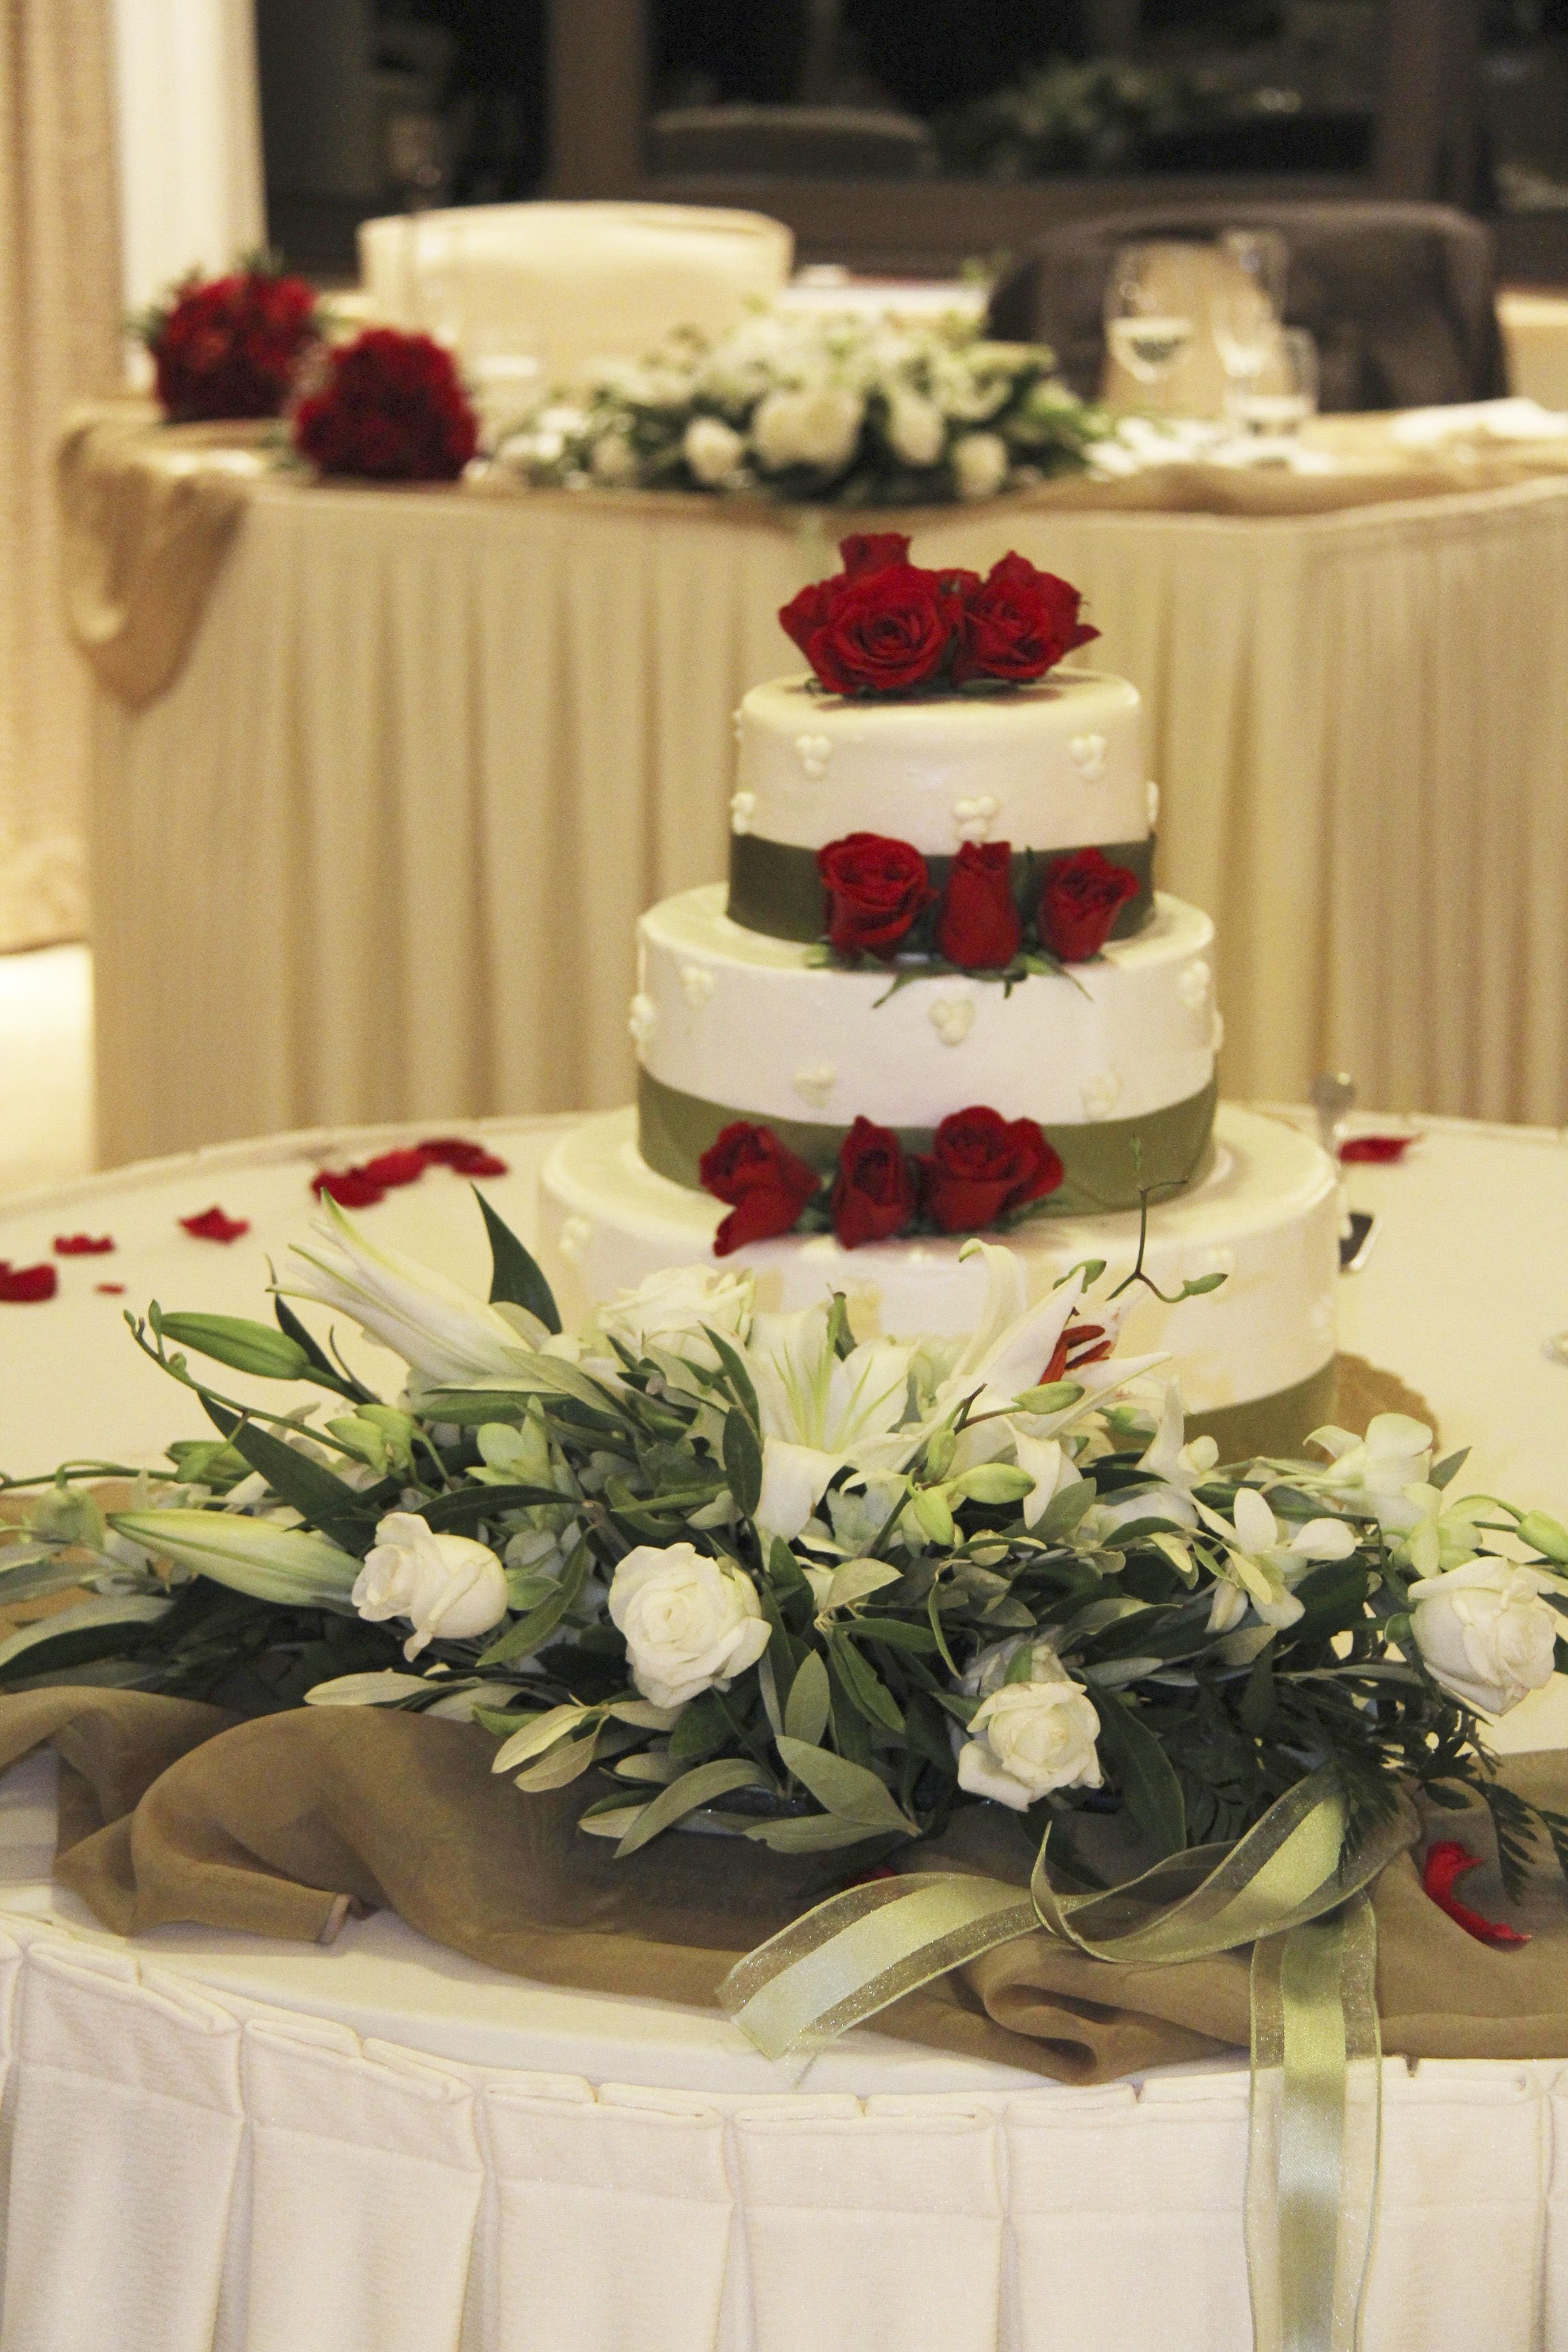 our cake was decorated with beautiful, simple real red roses to ...